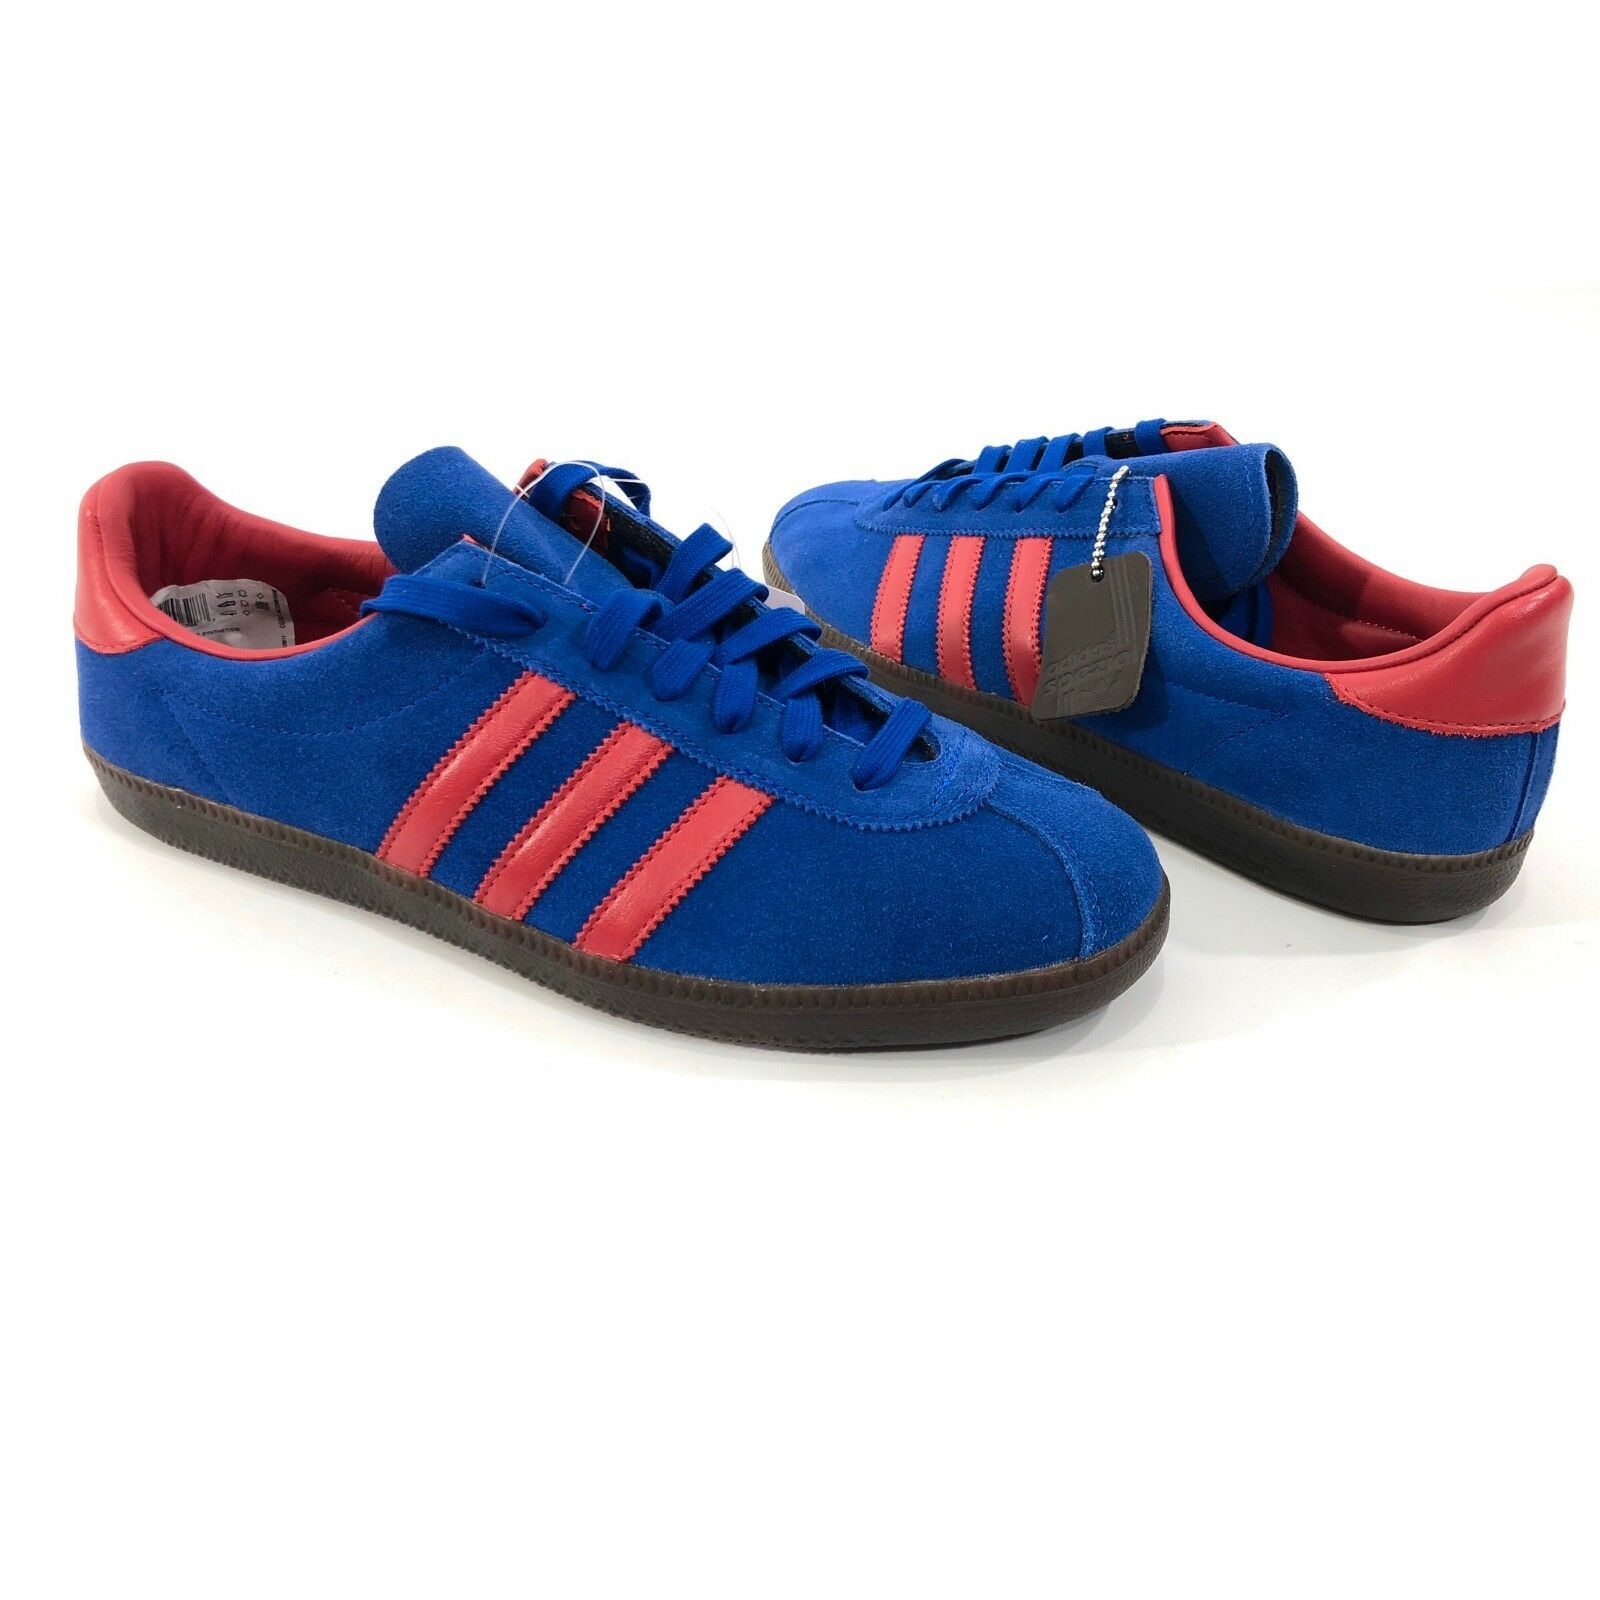 Adidas Spritus Spezial SPZL Men's Sz 10.5 Royal bluee   Red Running shoes CG2922